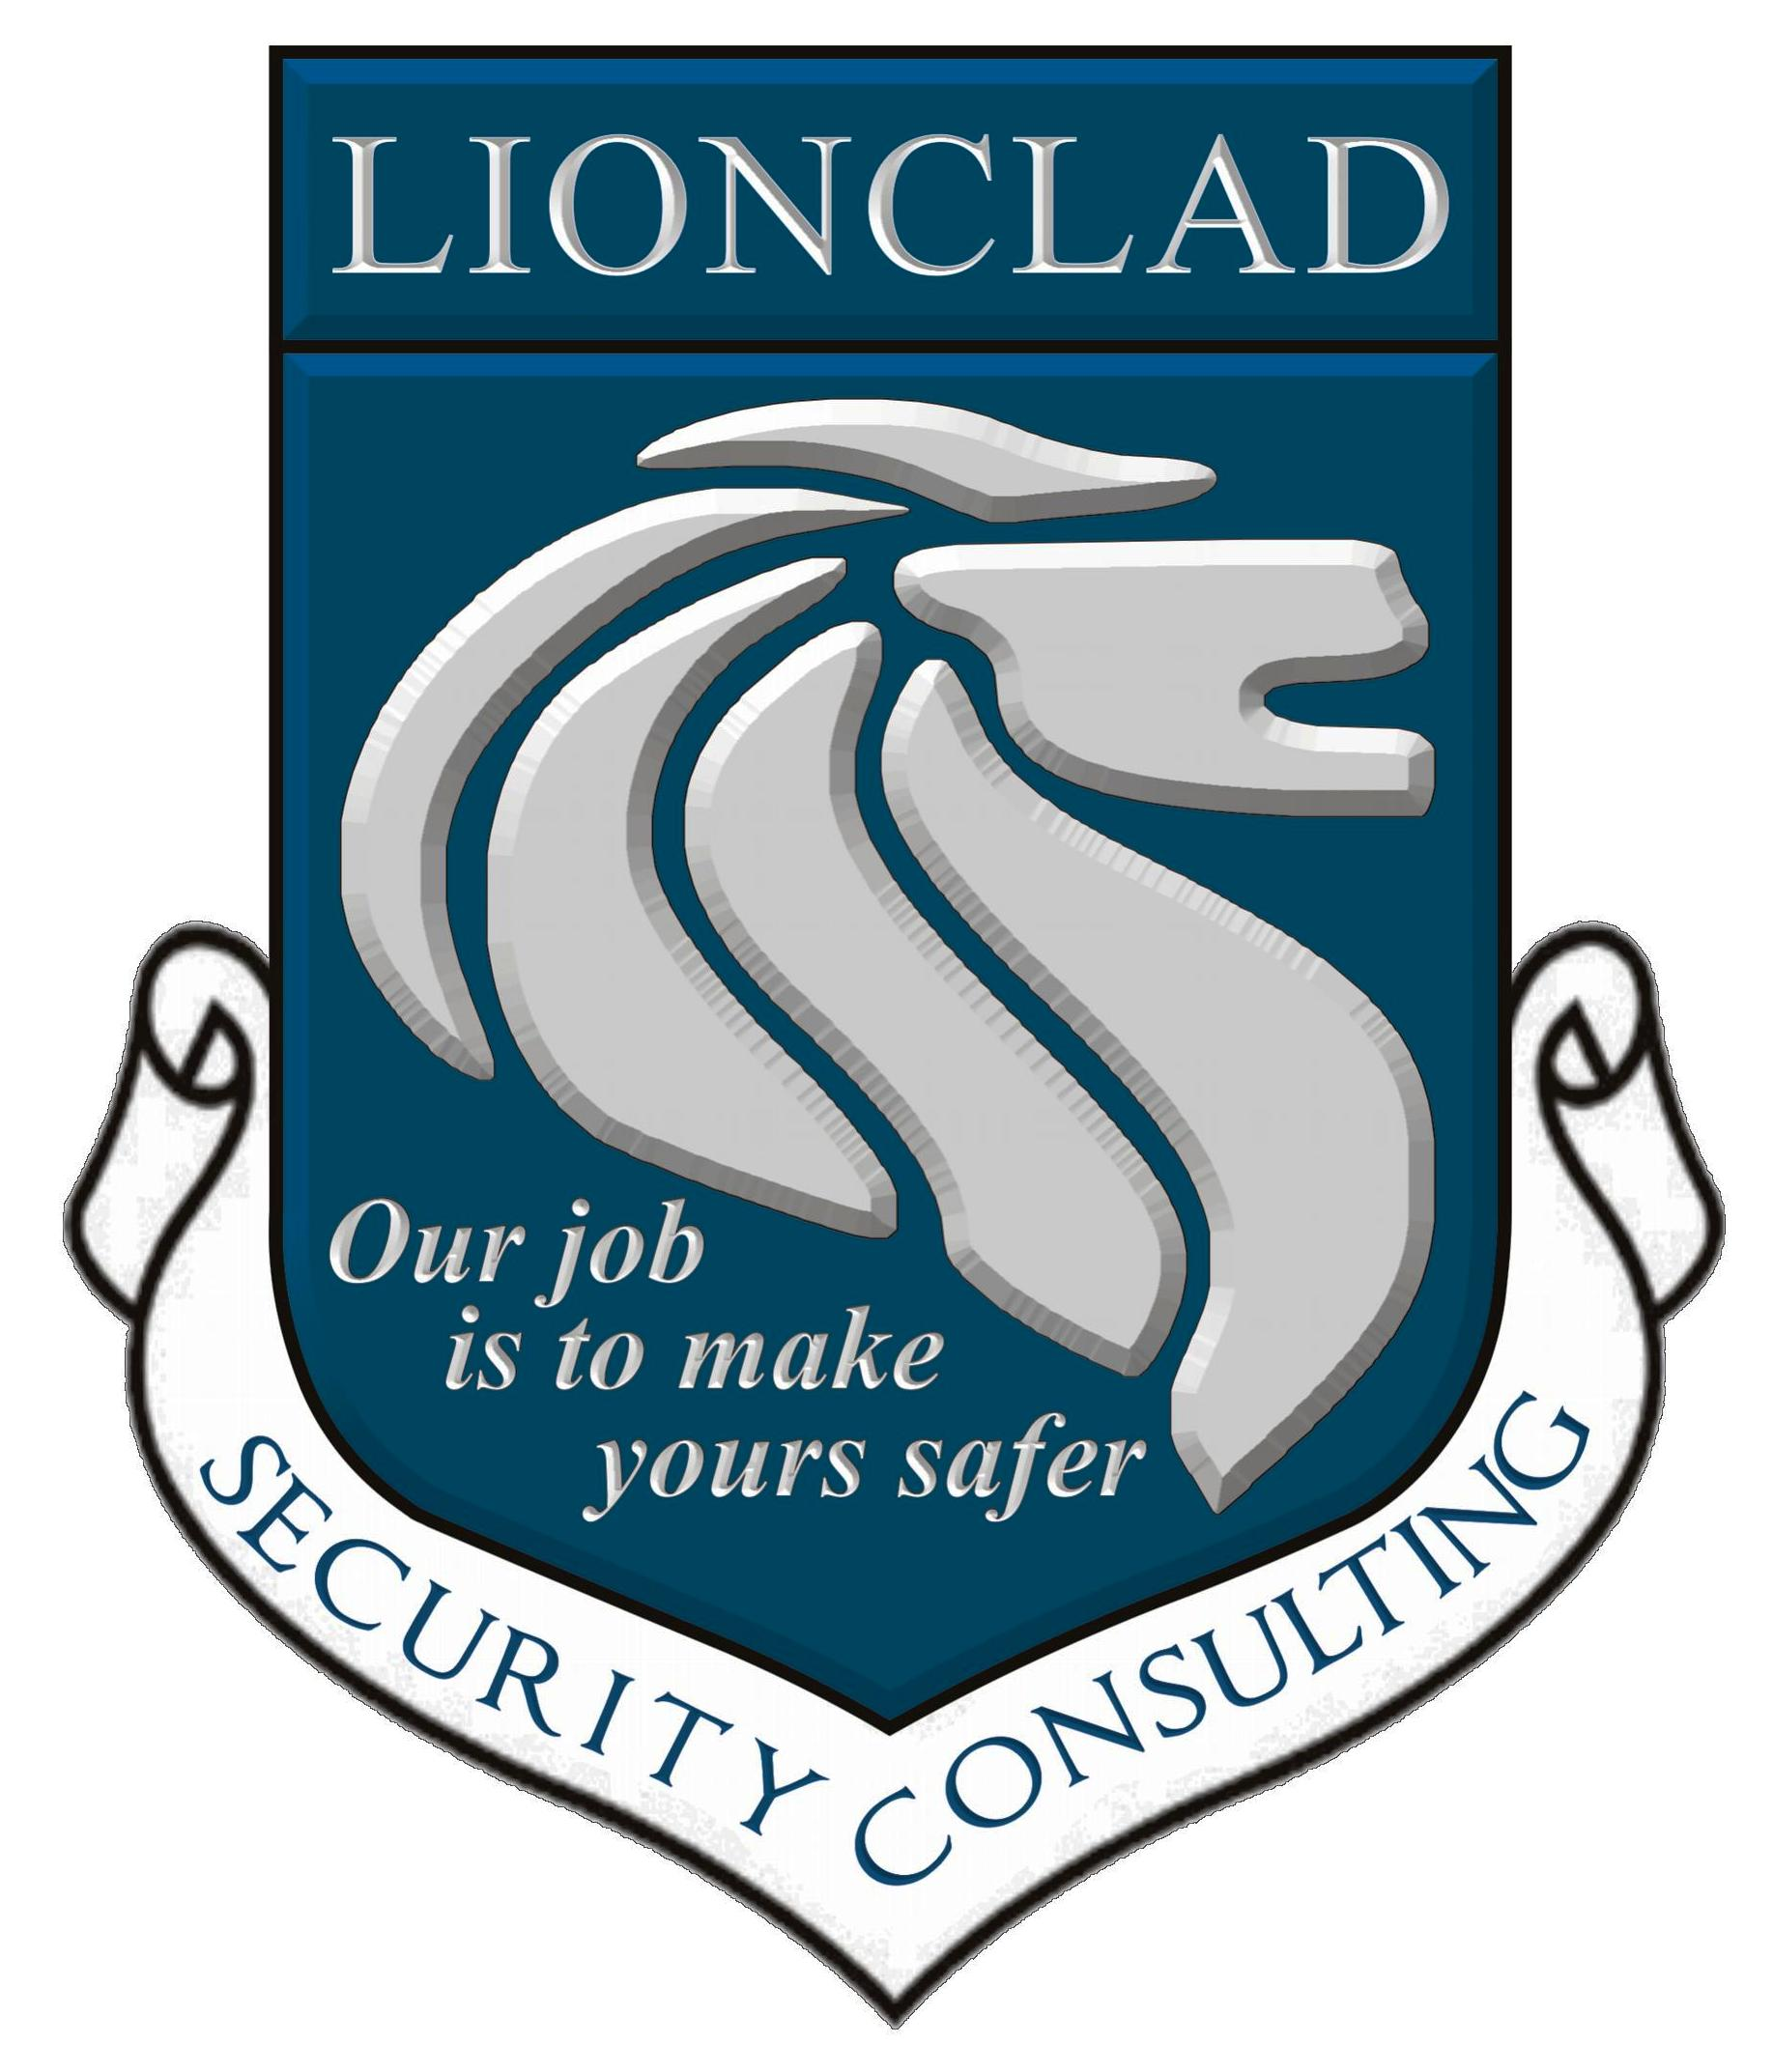 Security Consulting Firm Business Plan In Nigeria